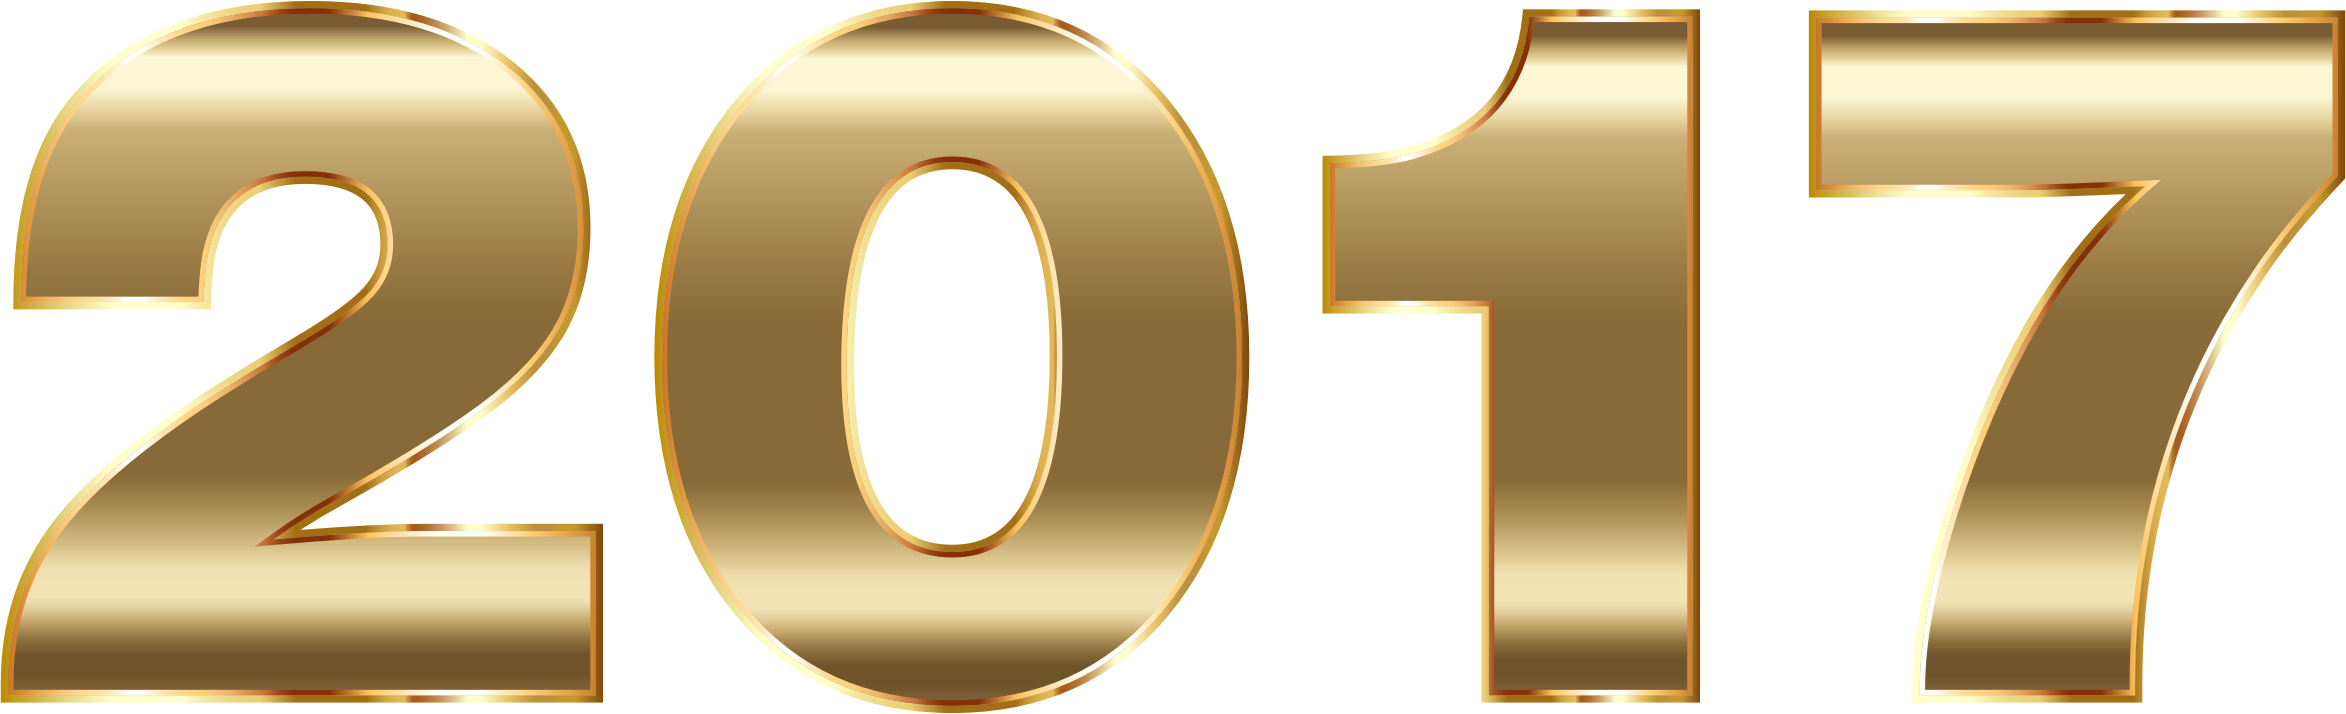 2017 clipart 2017 number. Gold typography no background